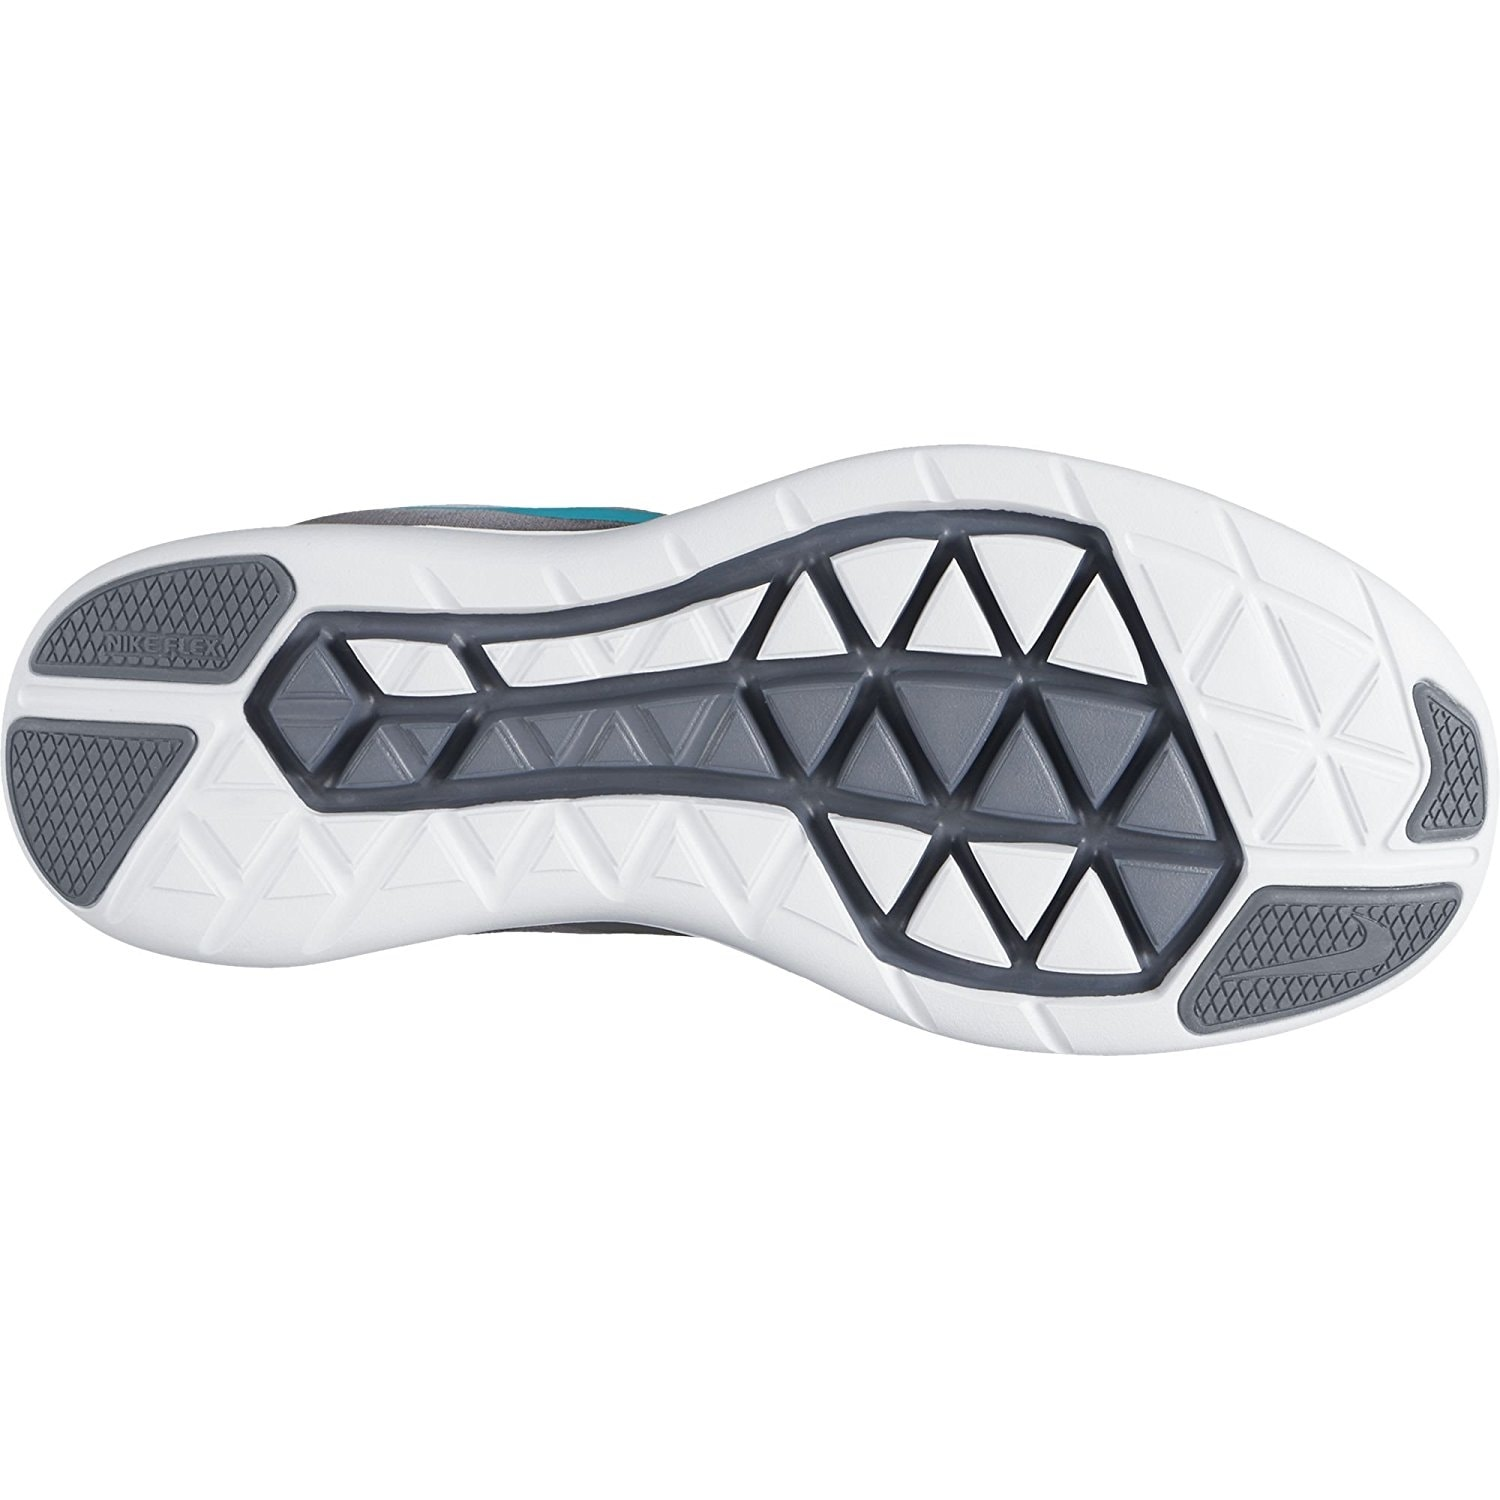 Shop Nike Women s Flex 2017 Running Shoes Pure Platinum  Clear Jade-Grey  Black - Free Shipping Today - Overstock - 17949926 22ac3d709